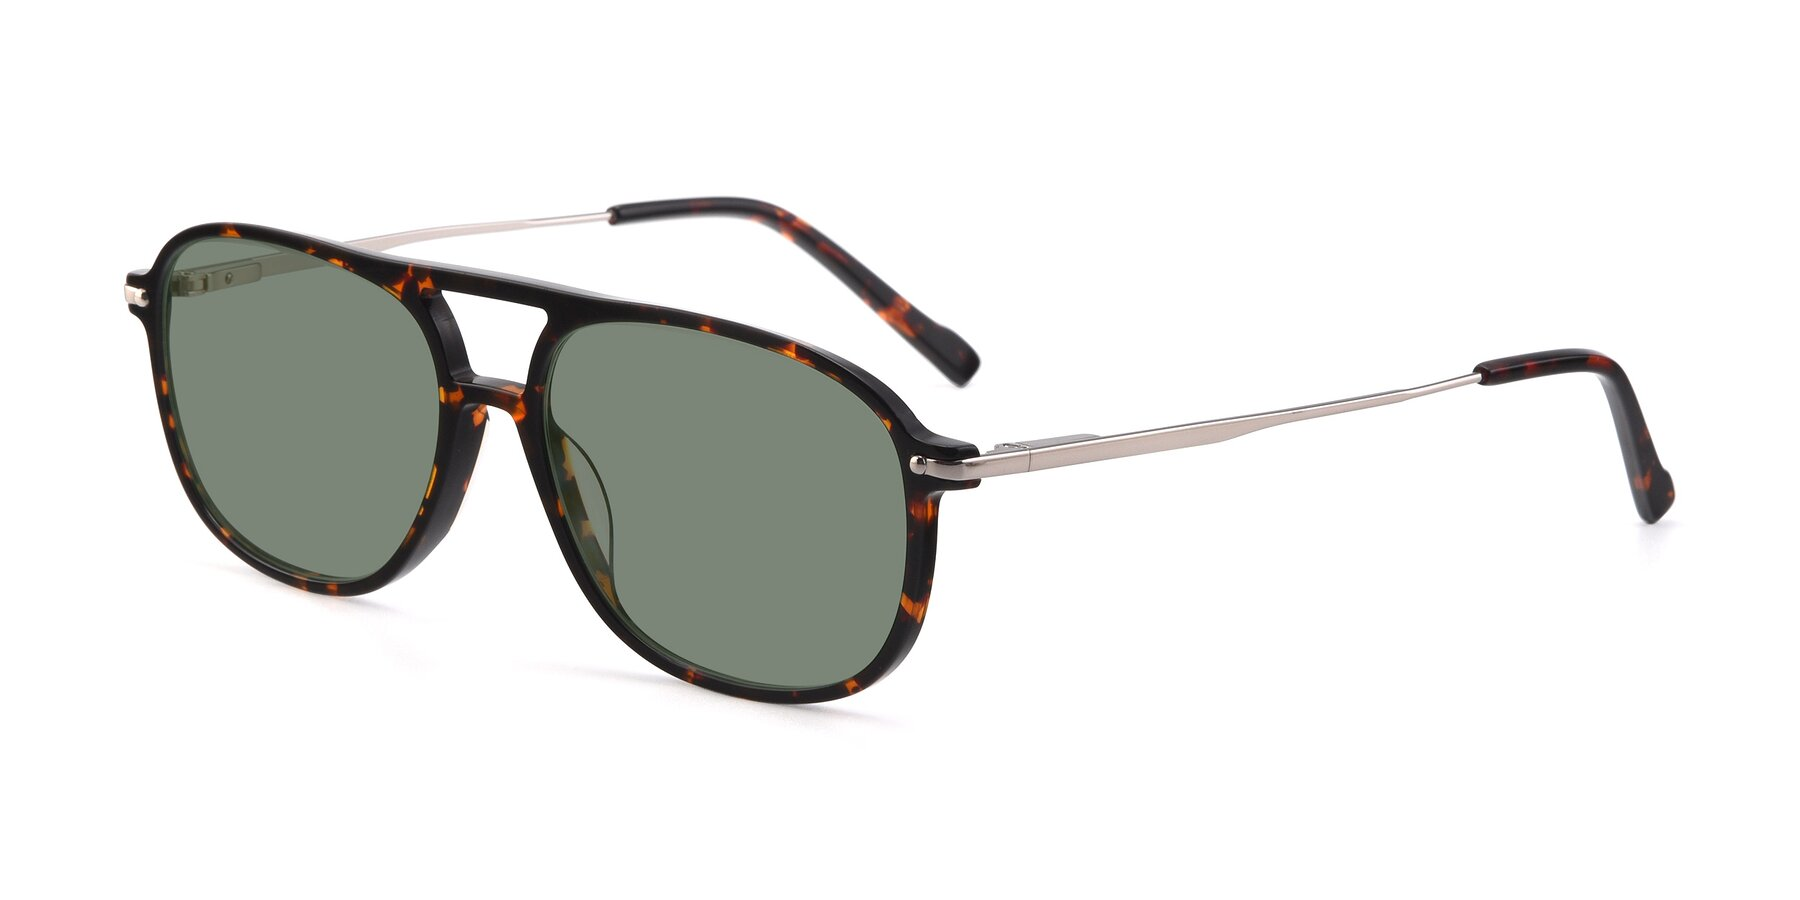 Angle of 17580 in Tortoise with Medium Green Tinted Lenses